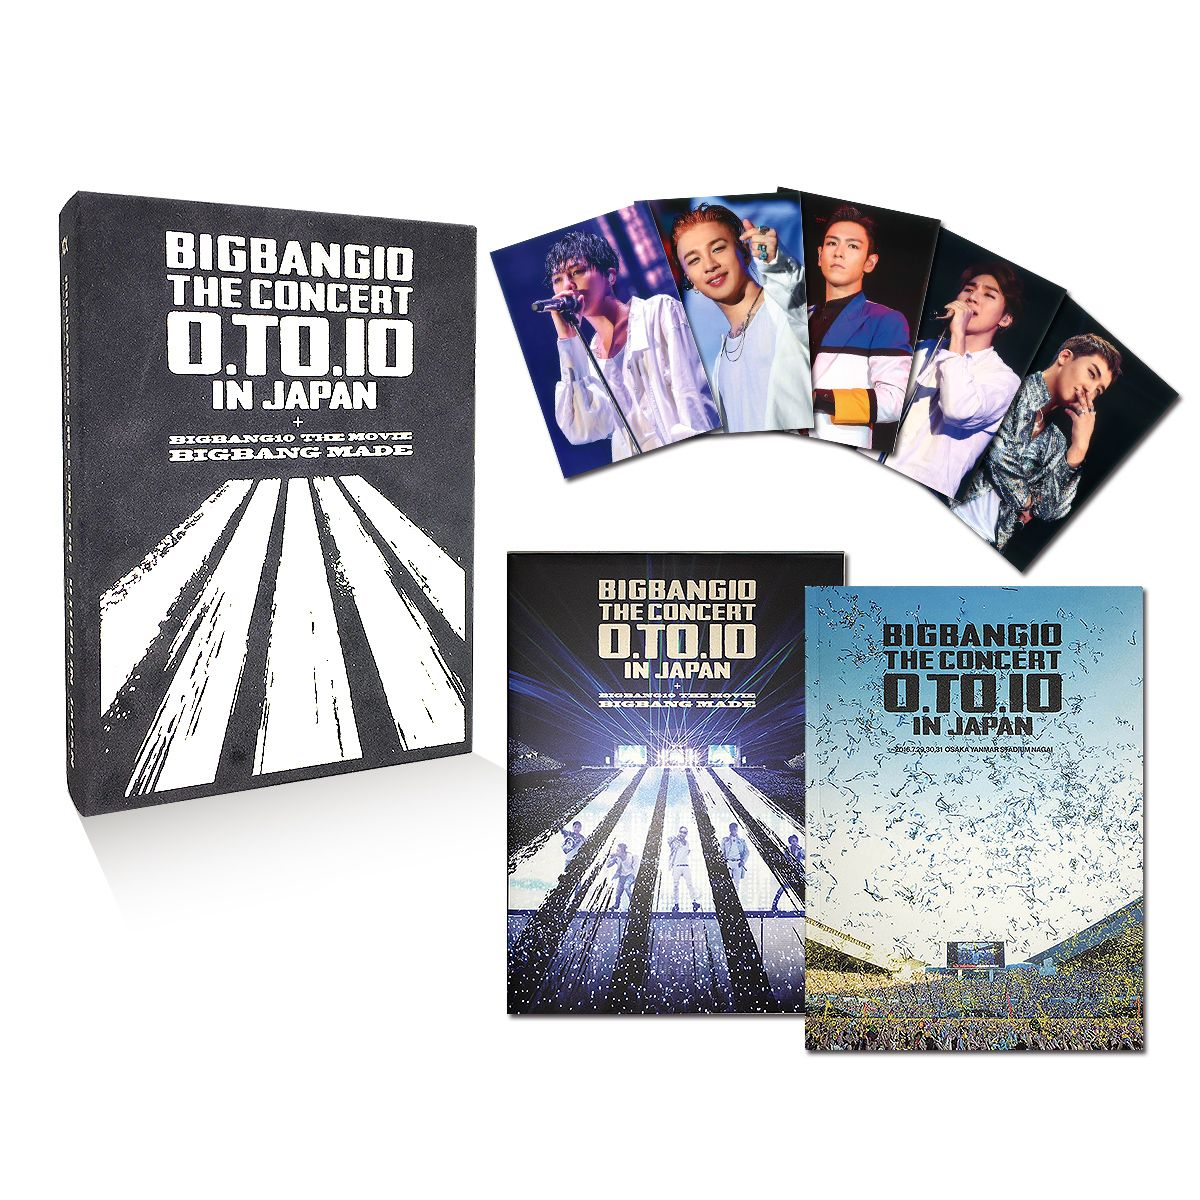 BIGBANG10 THE CONCERT : 0.TO.10 IN JAPAN + BIGBANG10 THE MOVIE BIGBANG MADE[DVD(4枚組)+LIVE CD(2枚組)+PHOTO BOOK+スマプラムービー&ミュージック] -DELUXE EDITION-(初回生産限定) [ BIGBANG ]